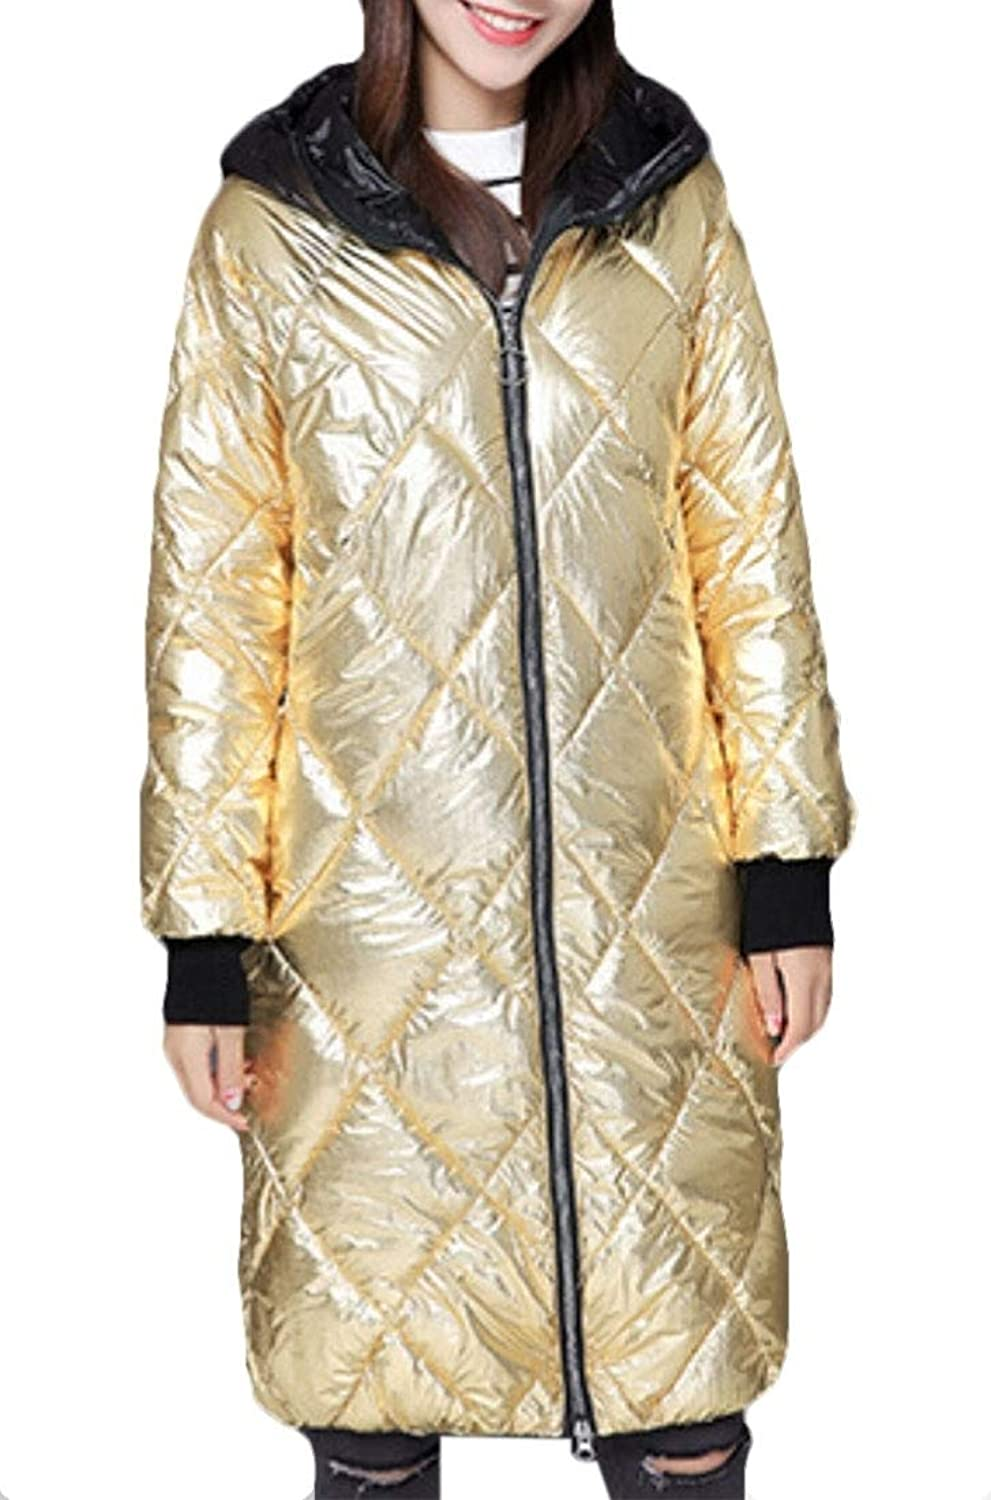 Keaac Women's Hooded Packable Zipper Ultra Light Weight Long Down Jacket